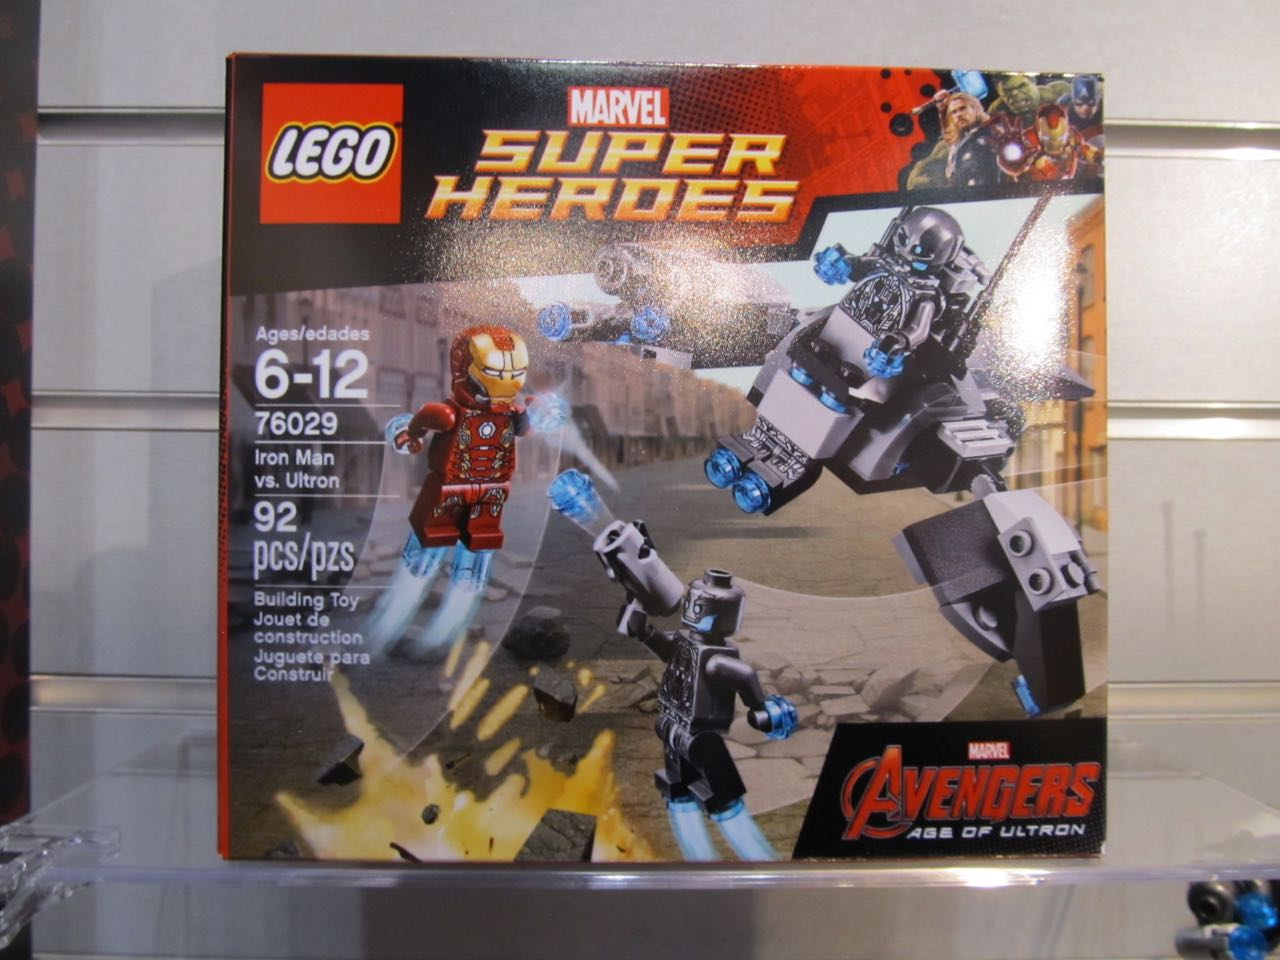 Tie AvengersAge Of Superherohype For FairLego's Sets In Toy Ultron L5Aj3c4Rq